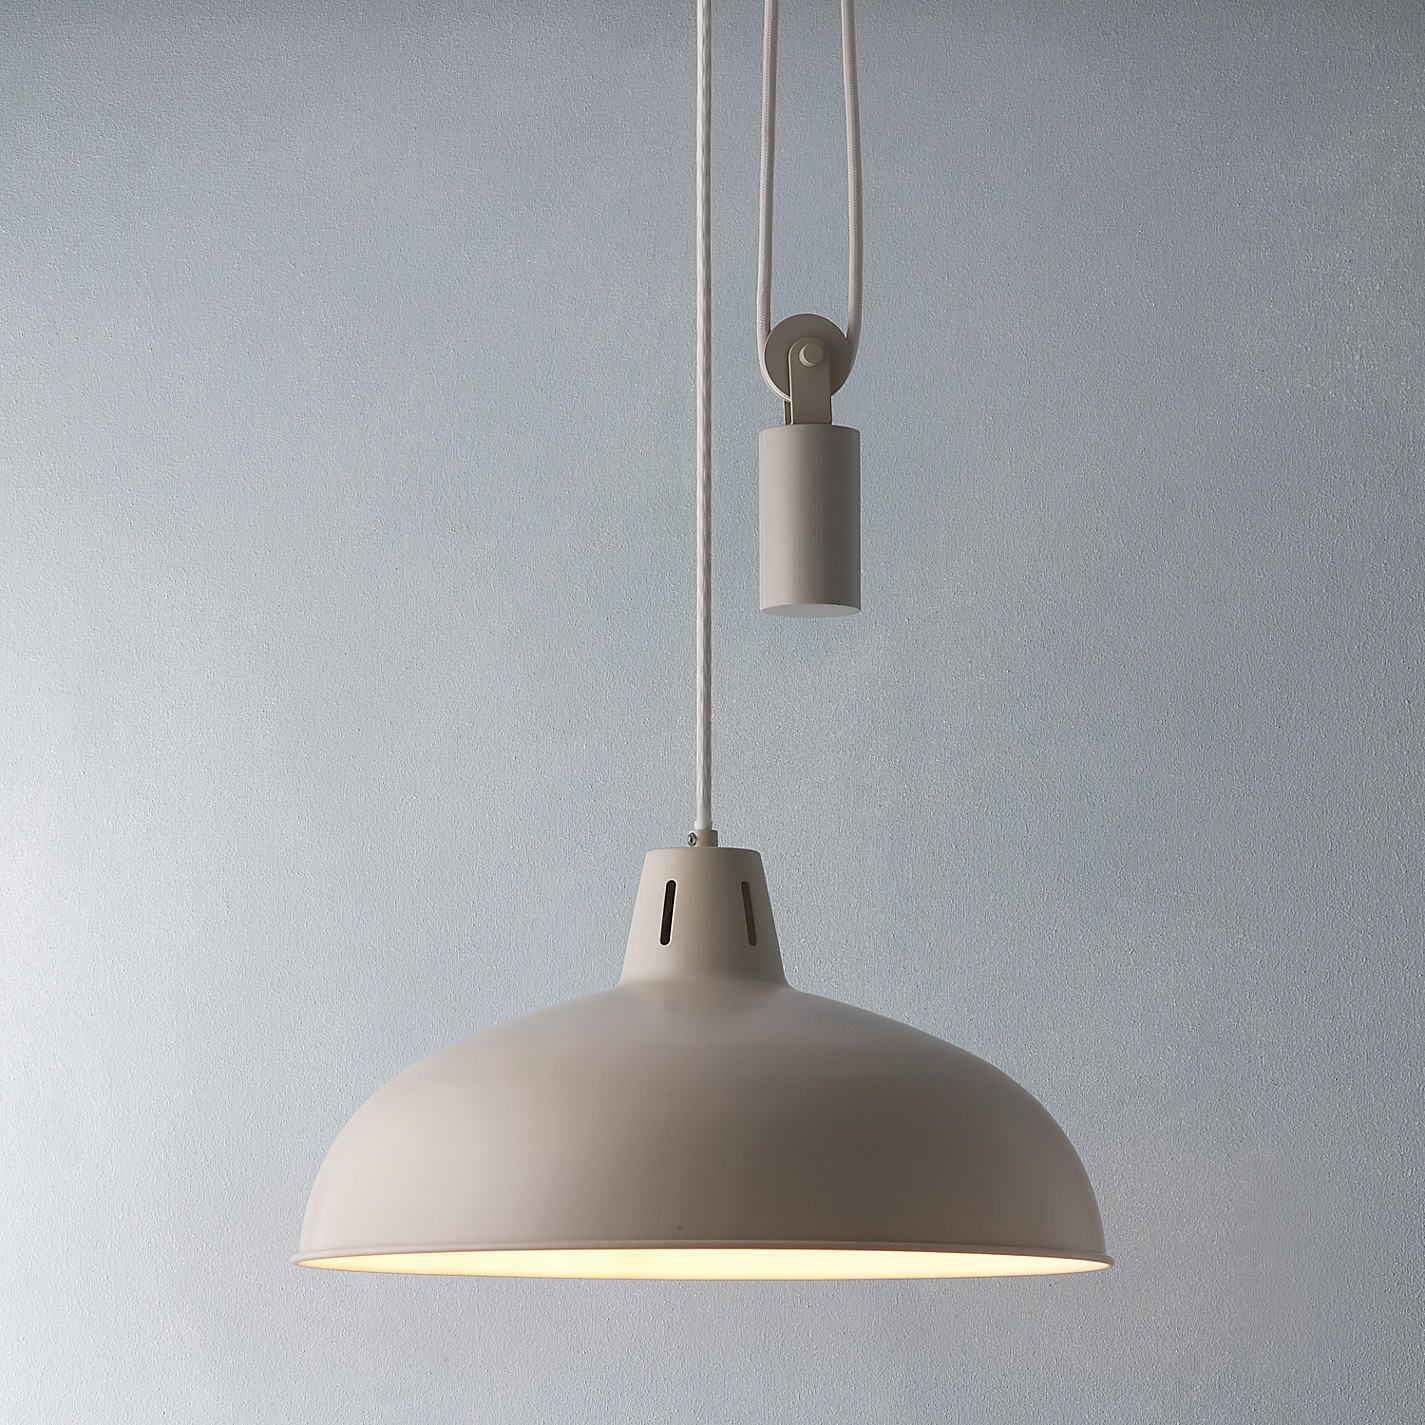 rise and fall ceiling pendant light hanging kitchen lights images about Adjustable Pendant Light on Pinterest Chandelier lighting Ceiling lamps and